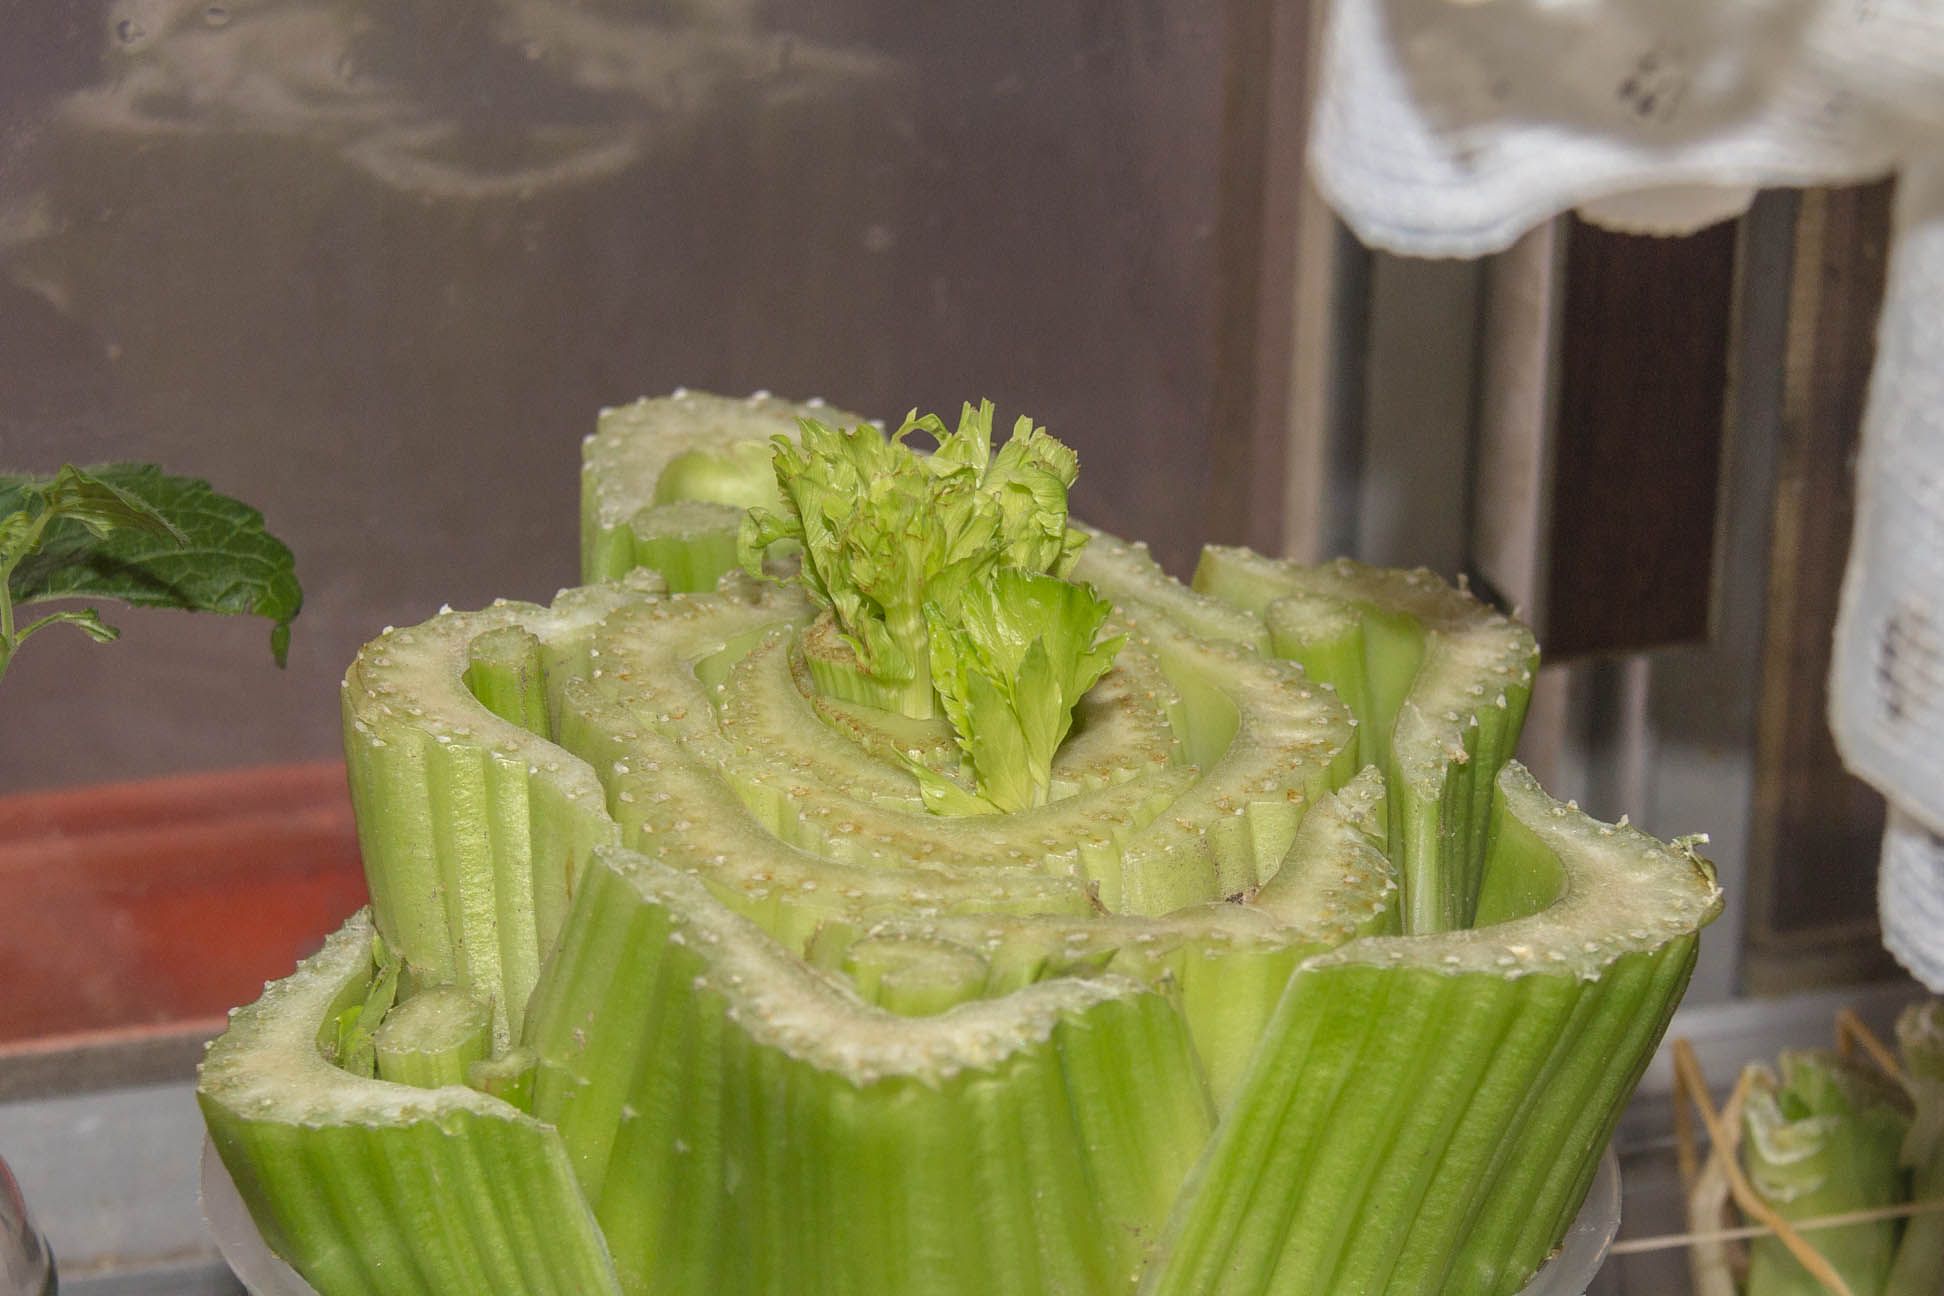 bottom half of celery suspended close up with leaves growing in the middle